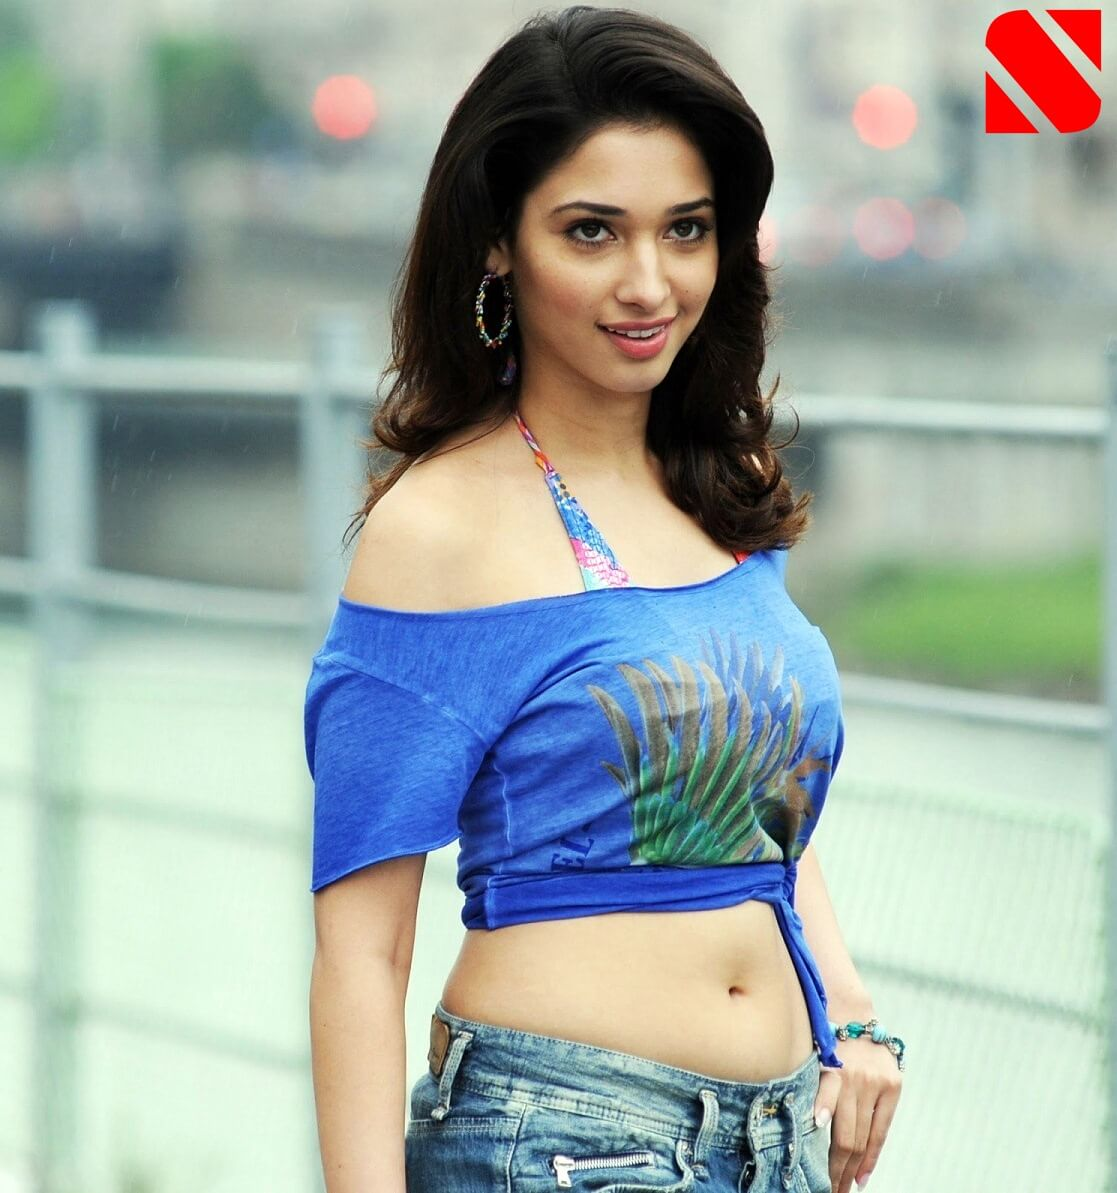 tamannaah bhatia biography •popular actress in tamil & telegu movies